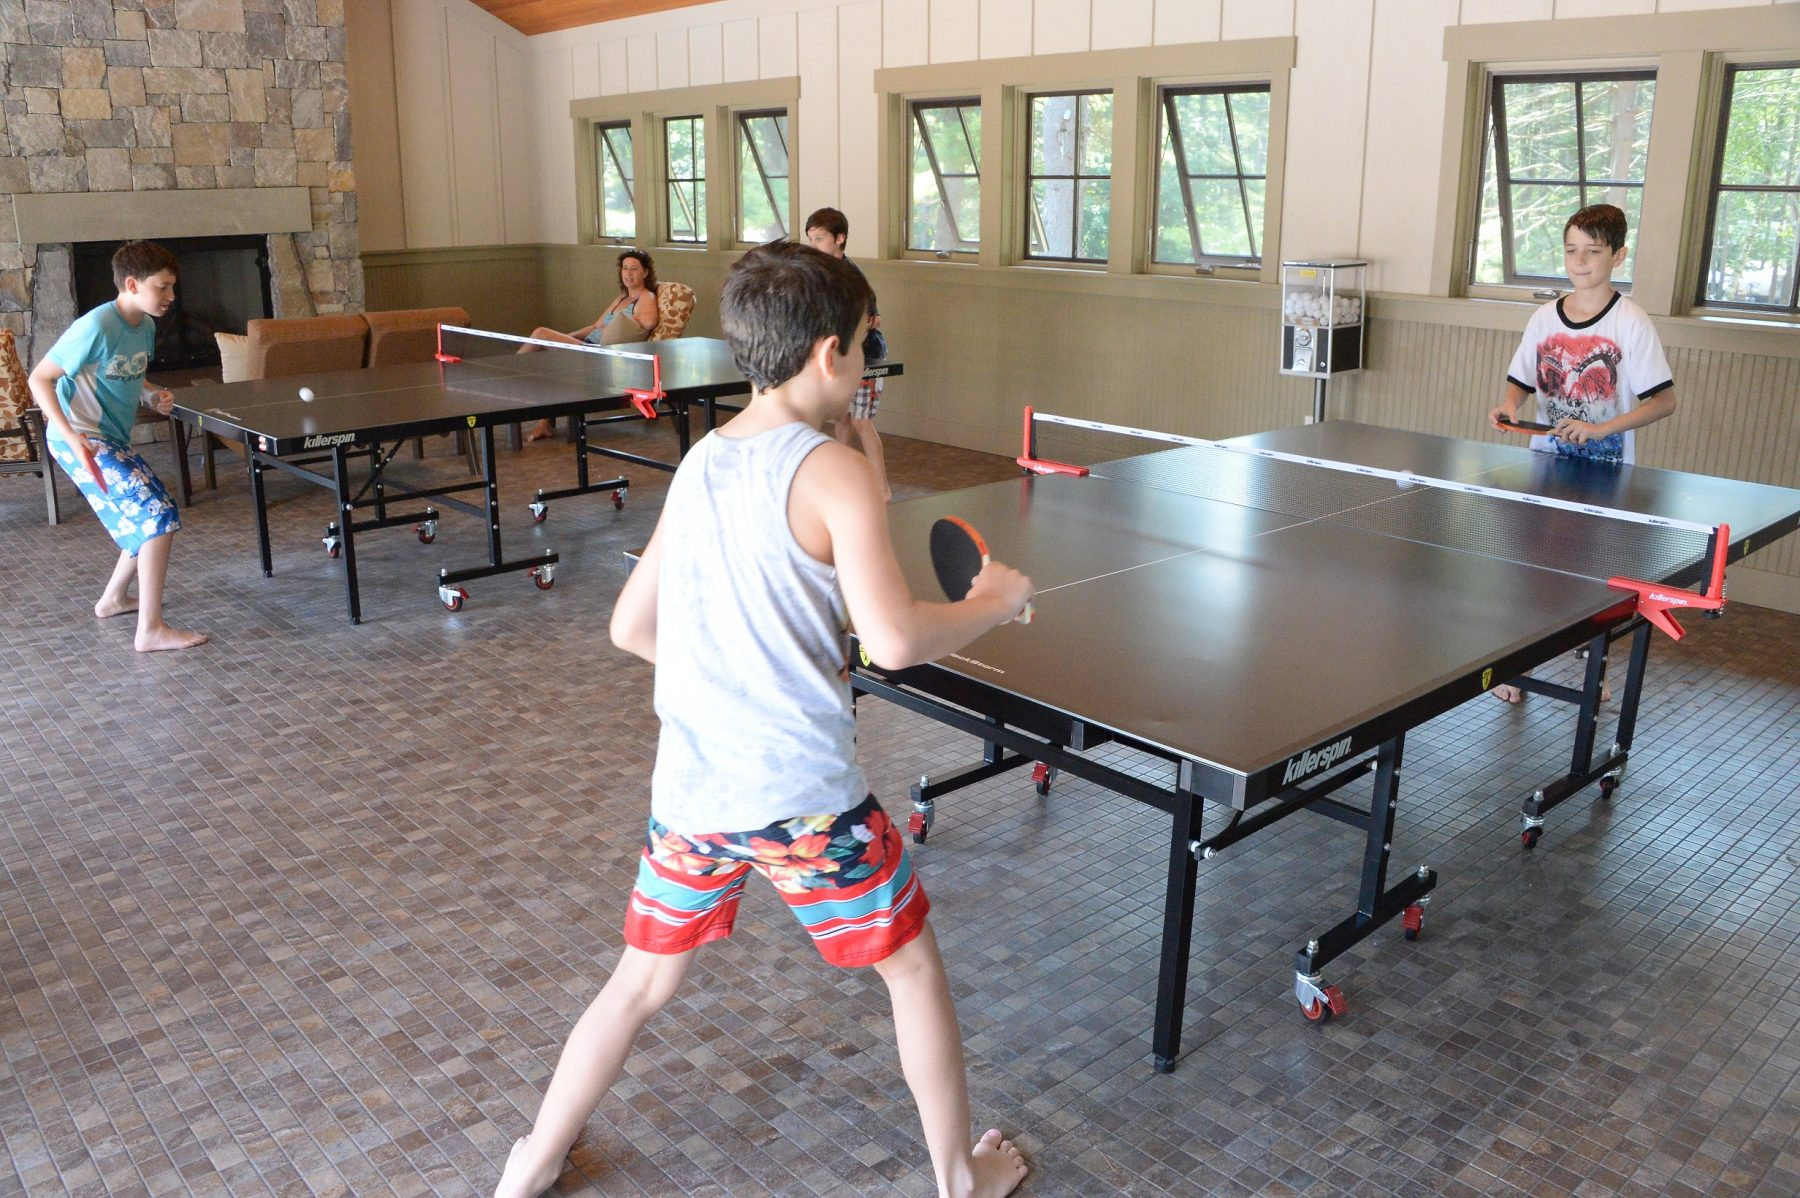 In the foreground of this photo both ping pong tables are shown. They are both being occupied by young boys playing ping pong.  In the background of the photo a young woman is shown sitting in one of the chairs watching the boys play.